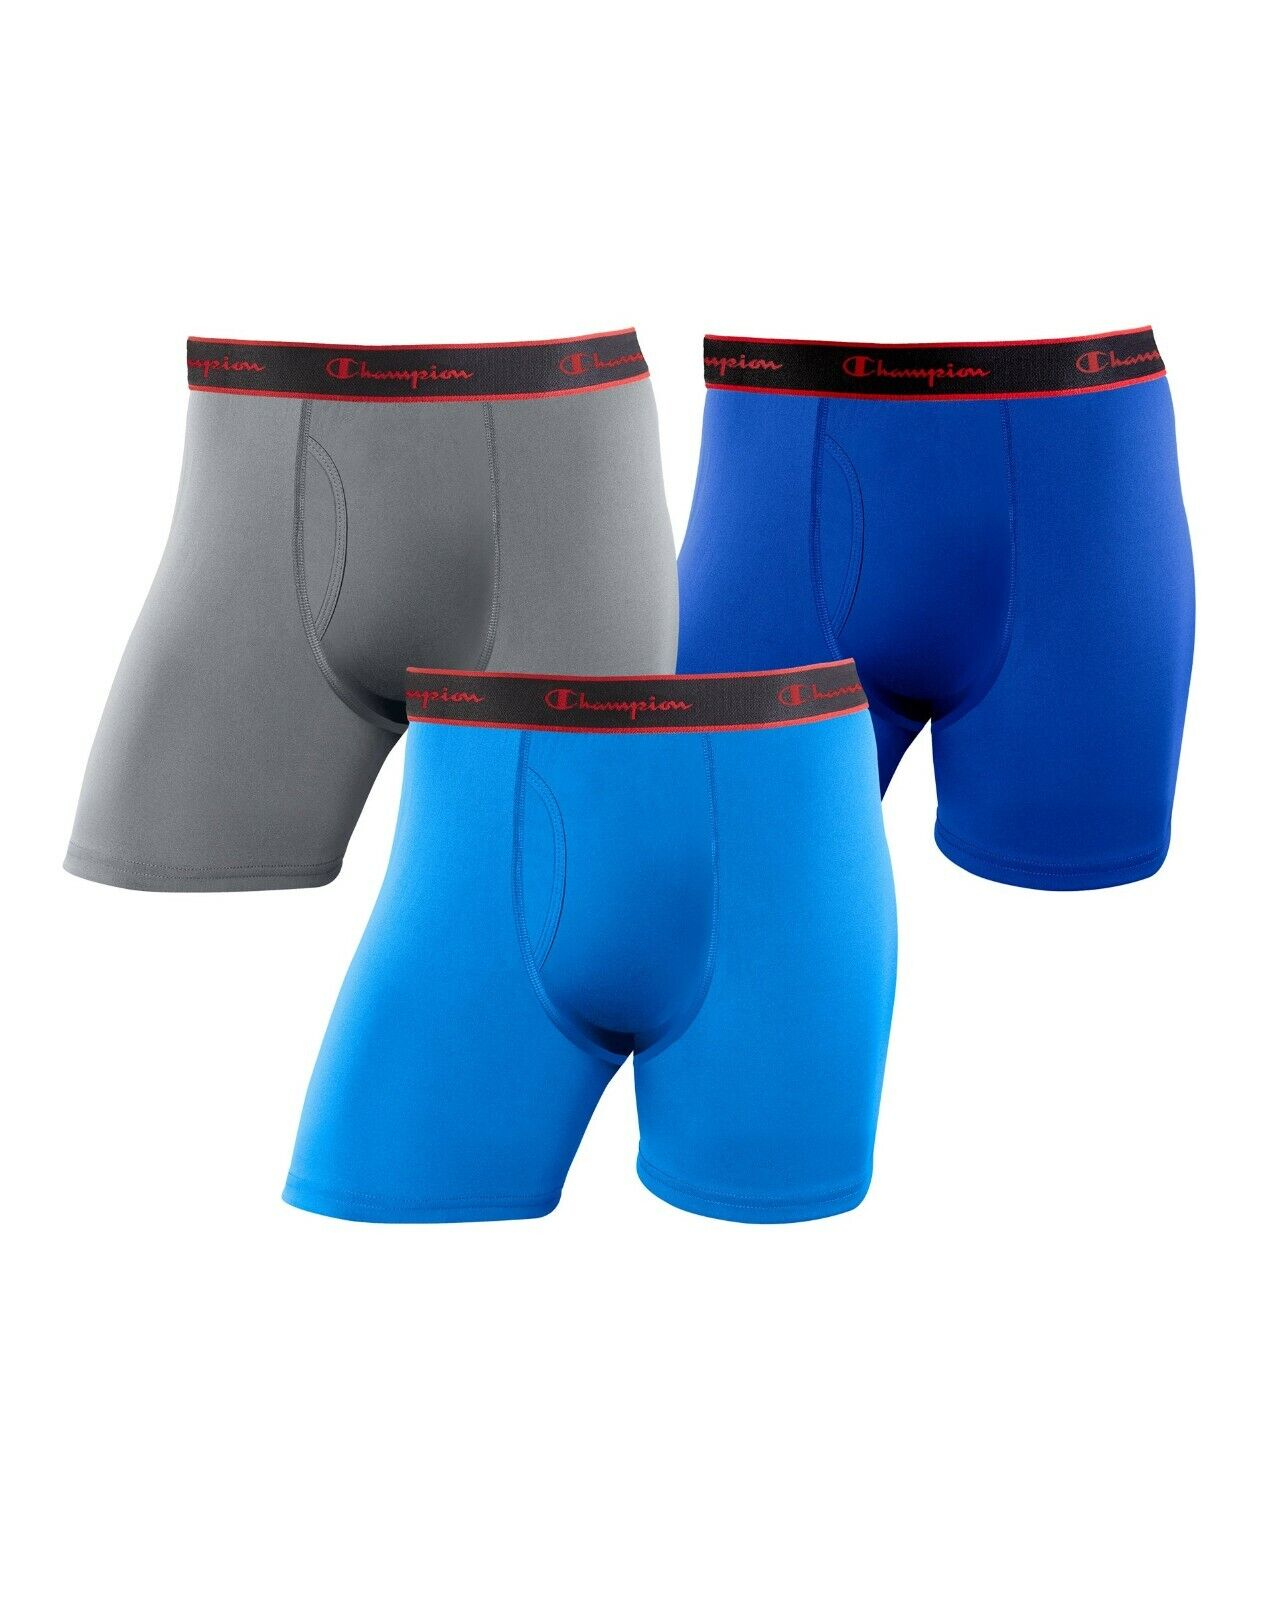 Champion 3 Pack Active Performance Moisture Wicking Boxer Briefs 3 pair Clothing, Shoes & Accessories